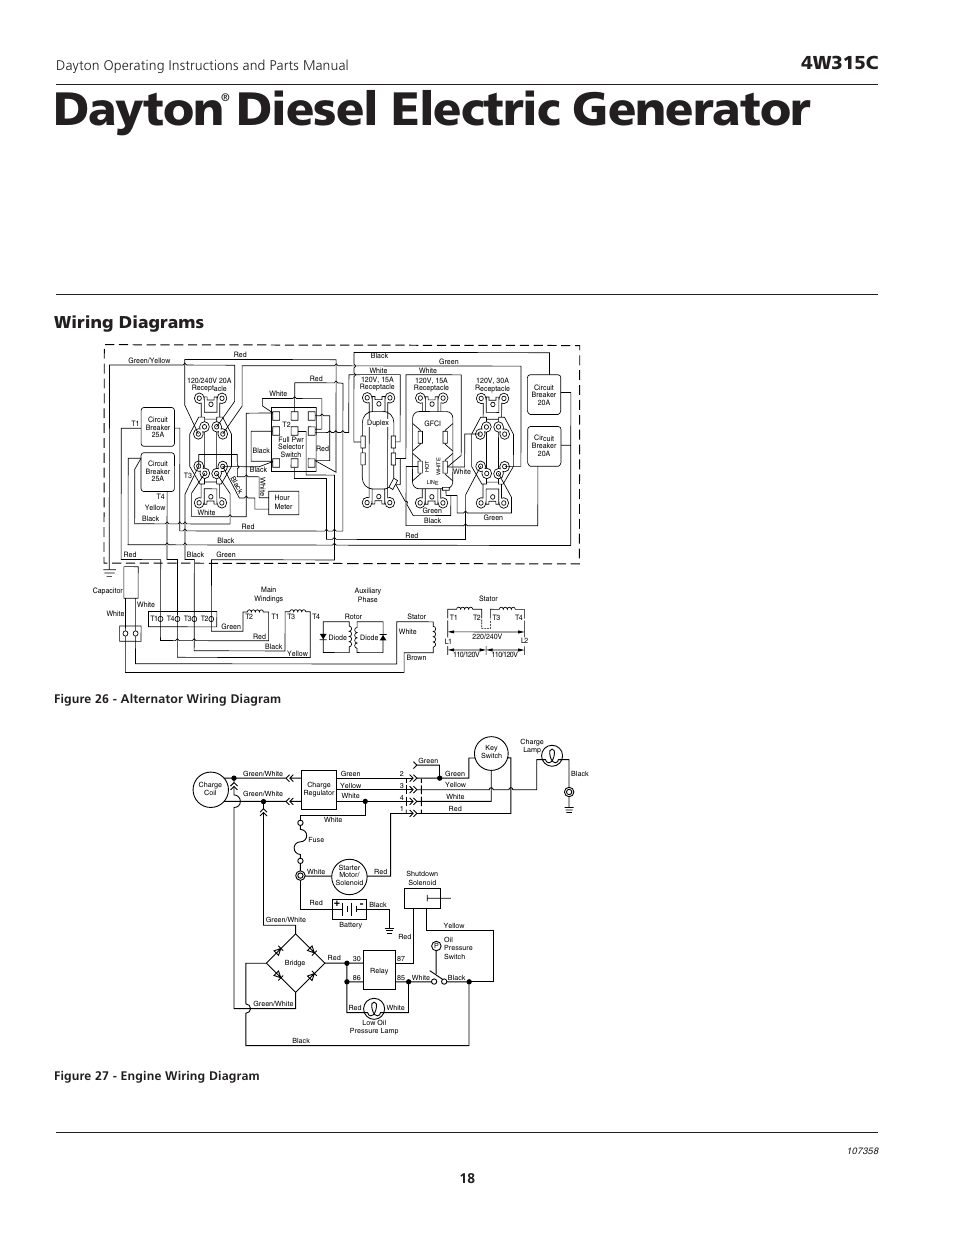 Dayton Diesel Electric Generator 4w315c Wiring Diagrams Vdo Engine Diagram For Operating Instructions And Parts Manual